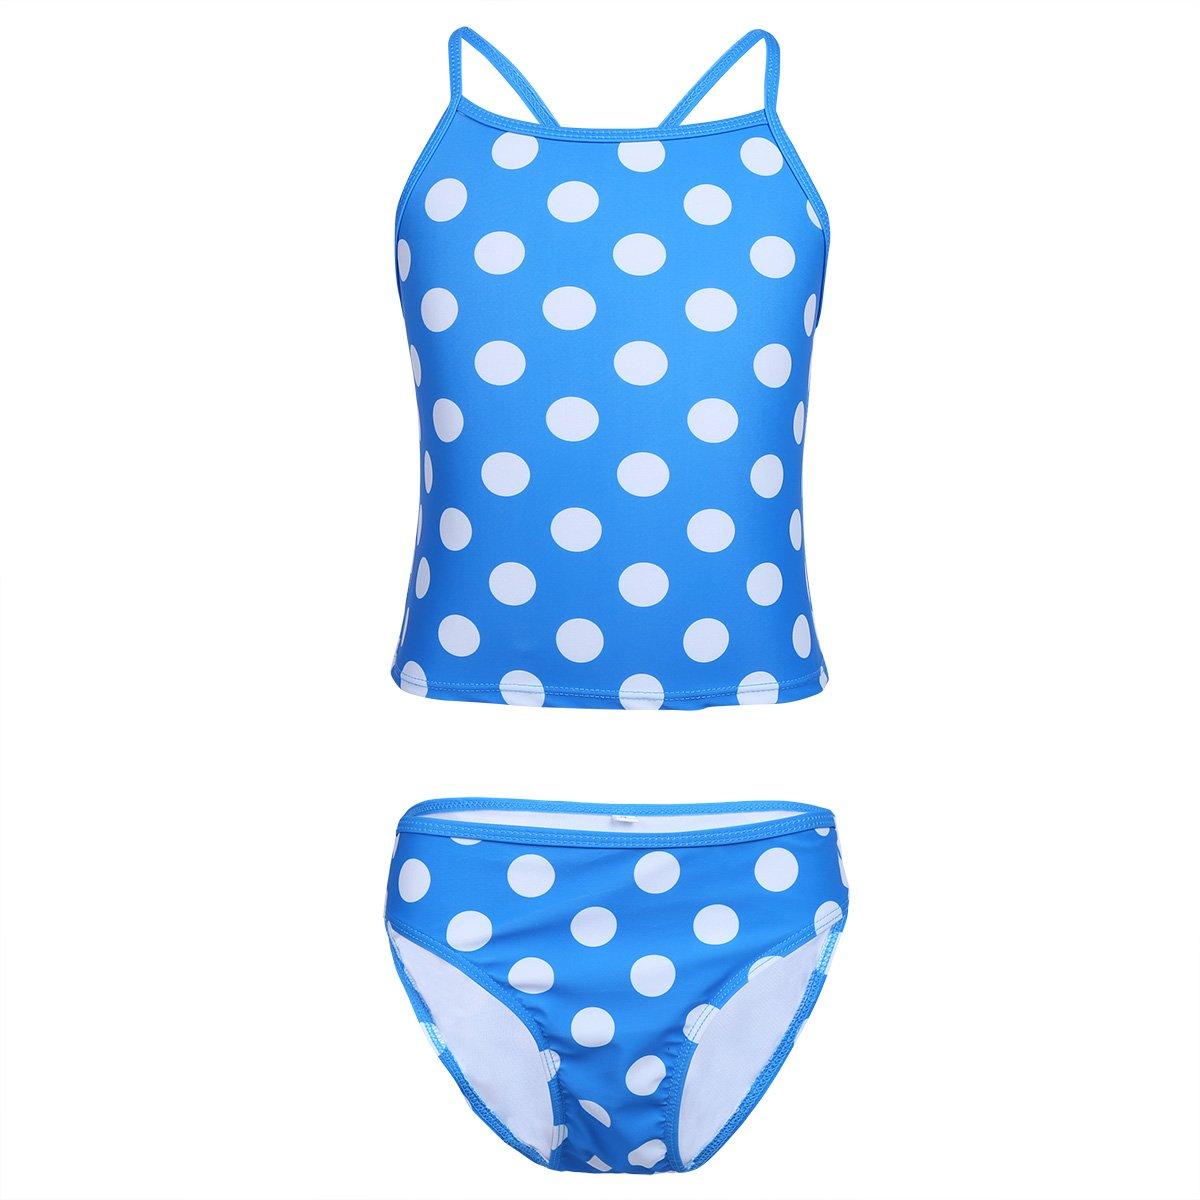 Saymequeen 3-15 Year-Old Girls Wave Point Swimwear Ruffled Tankinis Summer Swimsuit